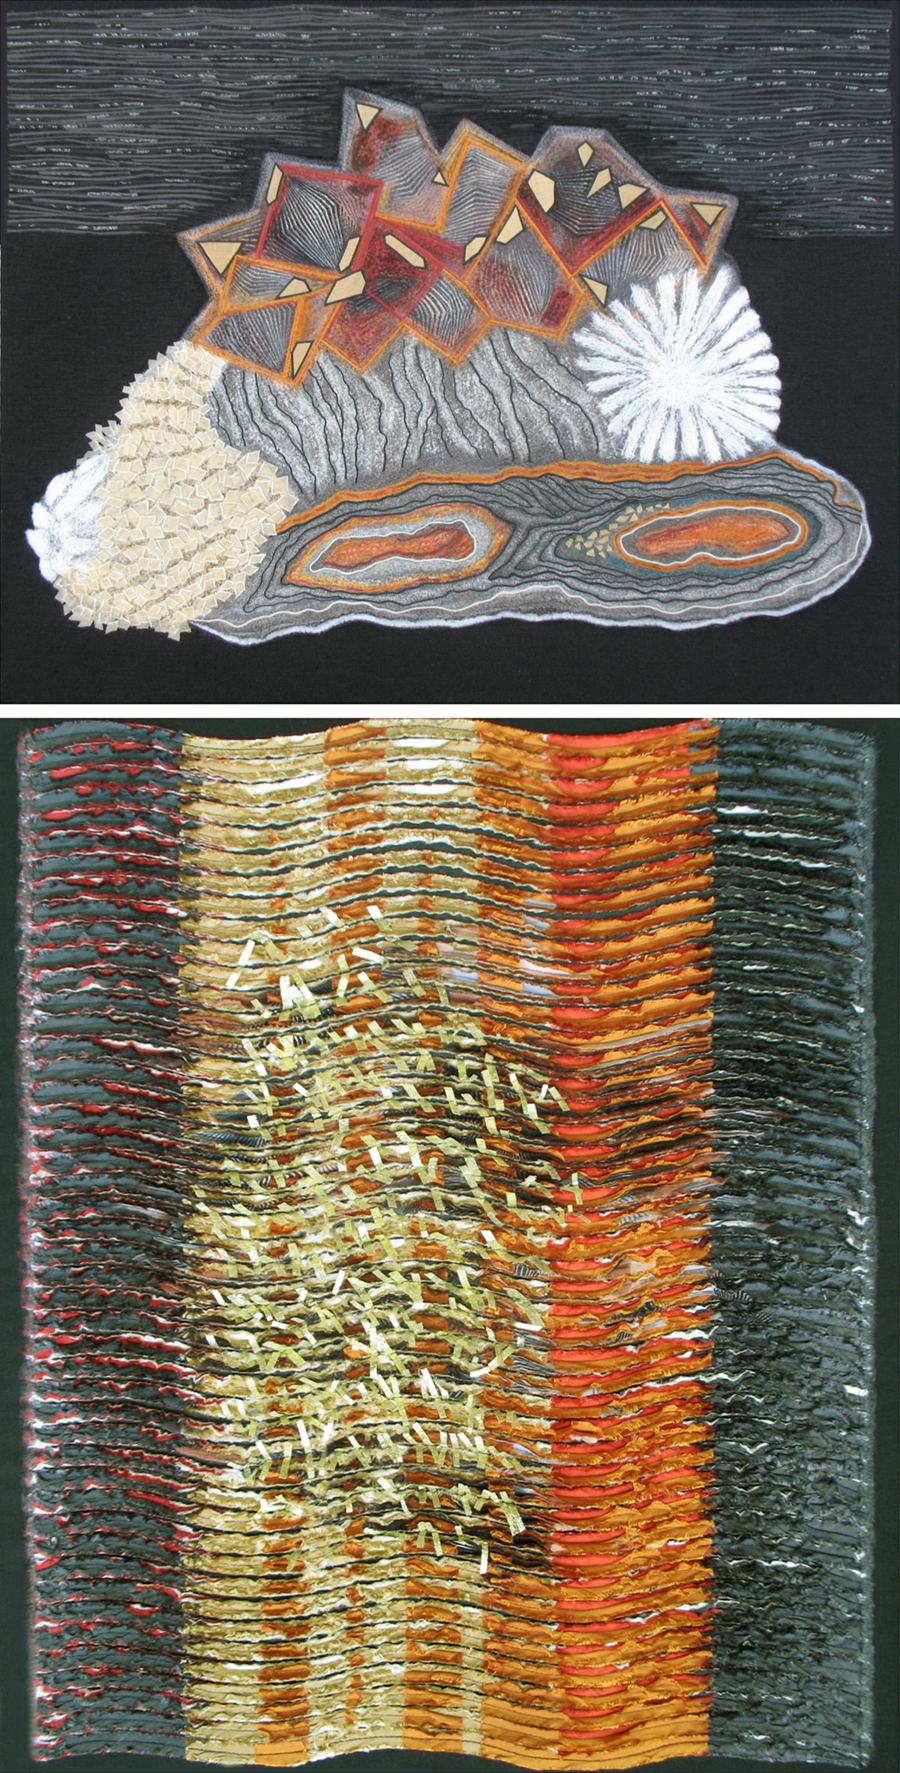 Mineral in Composition, diptych